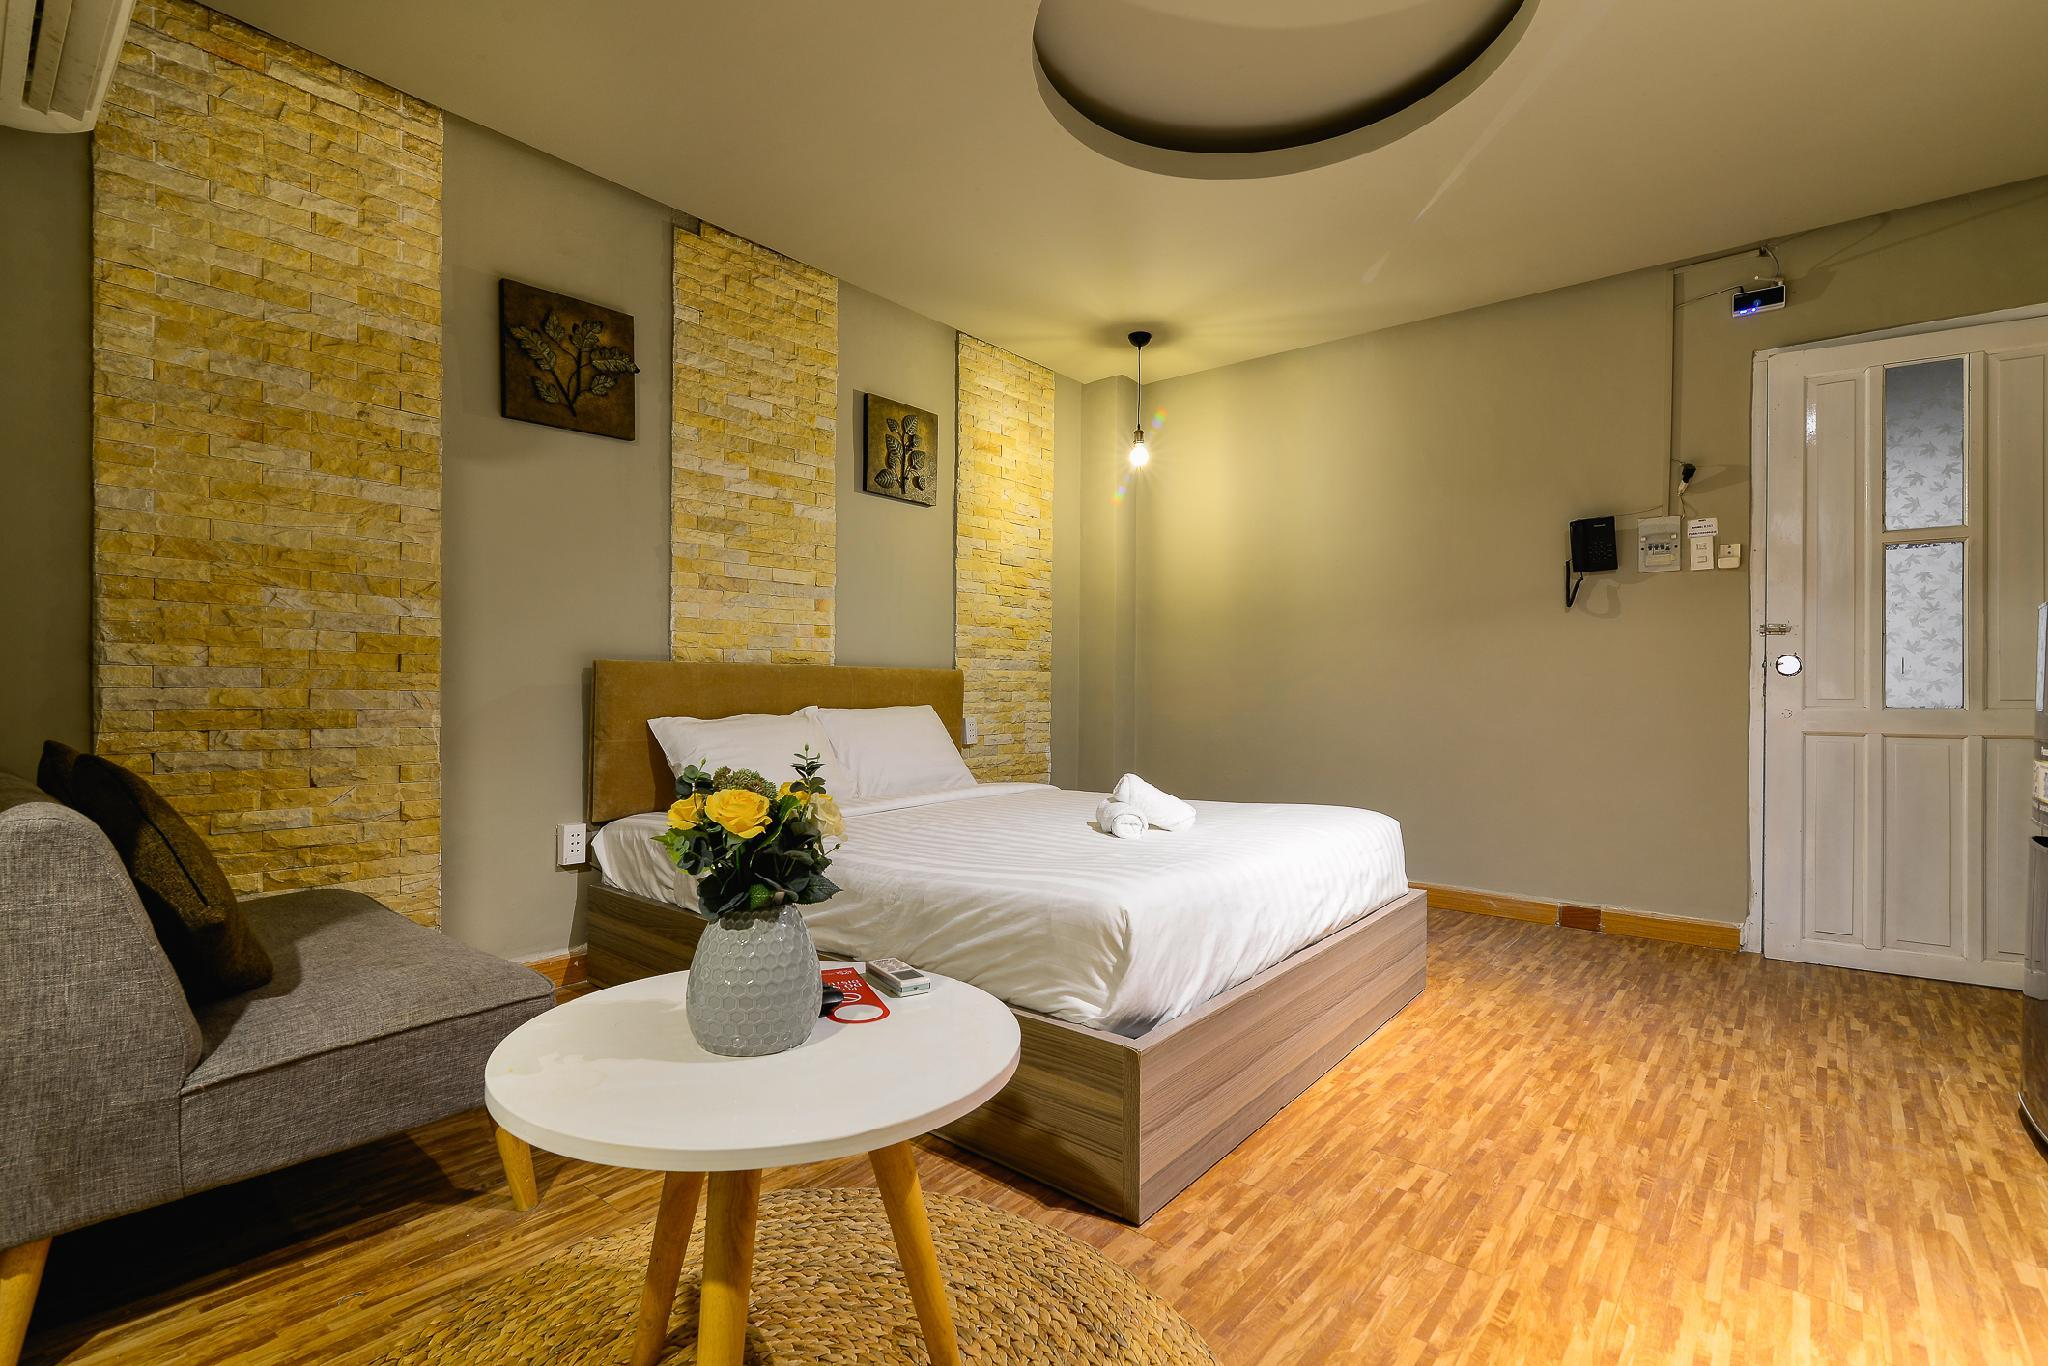 Nice Room With Jacuzzi Tub - 9 House - D1 Ho Chi Minh City Vietnam